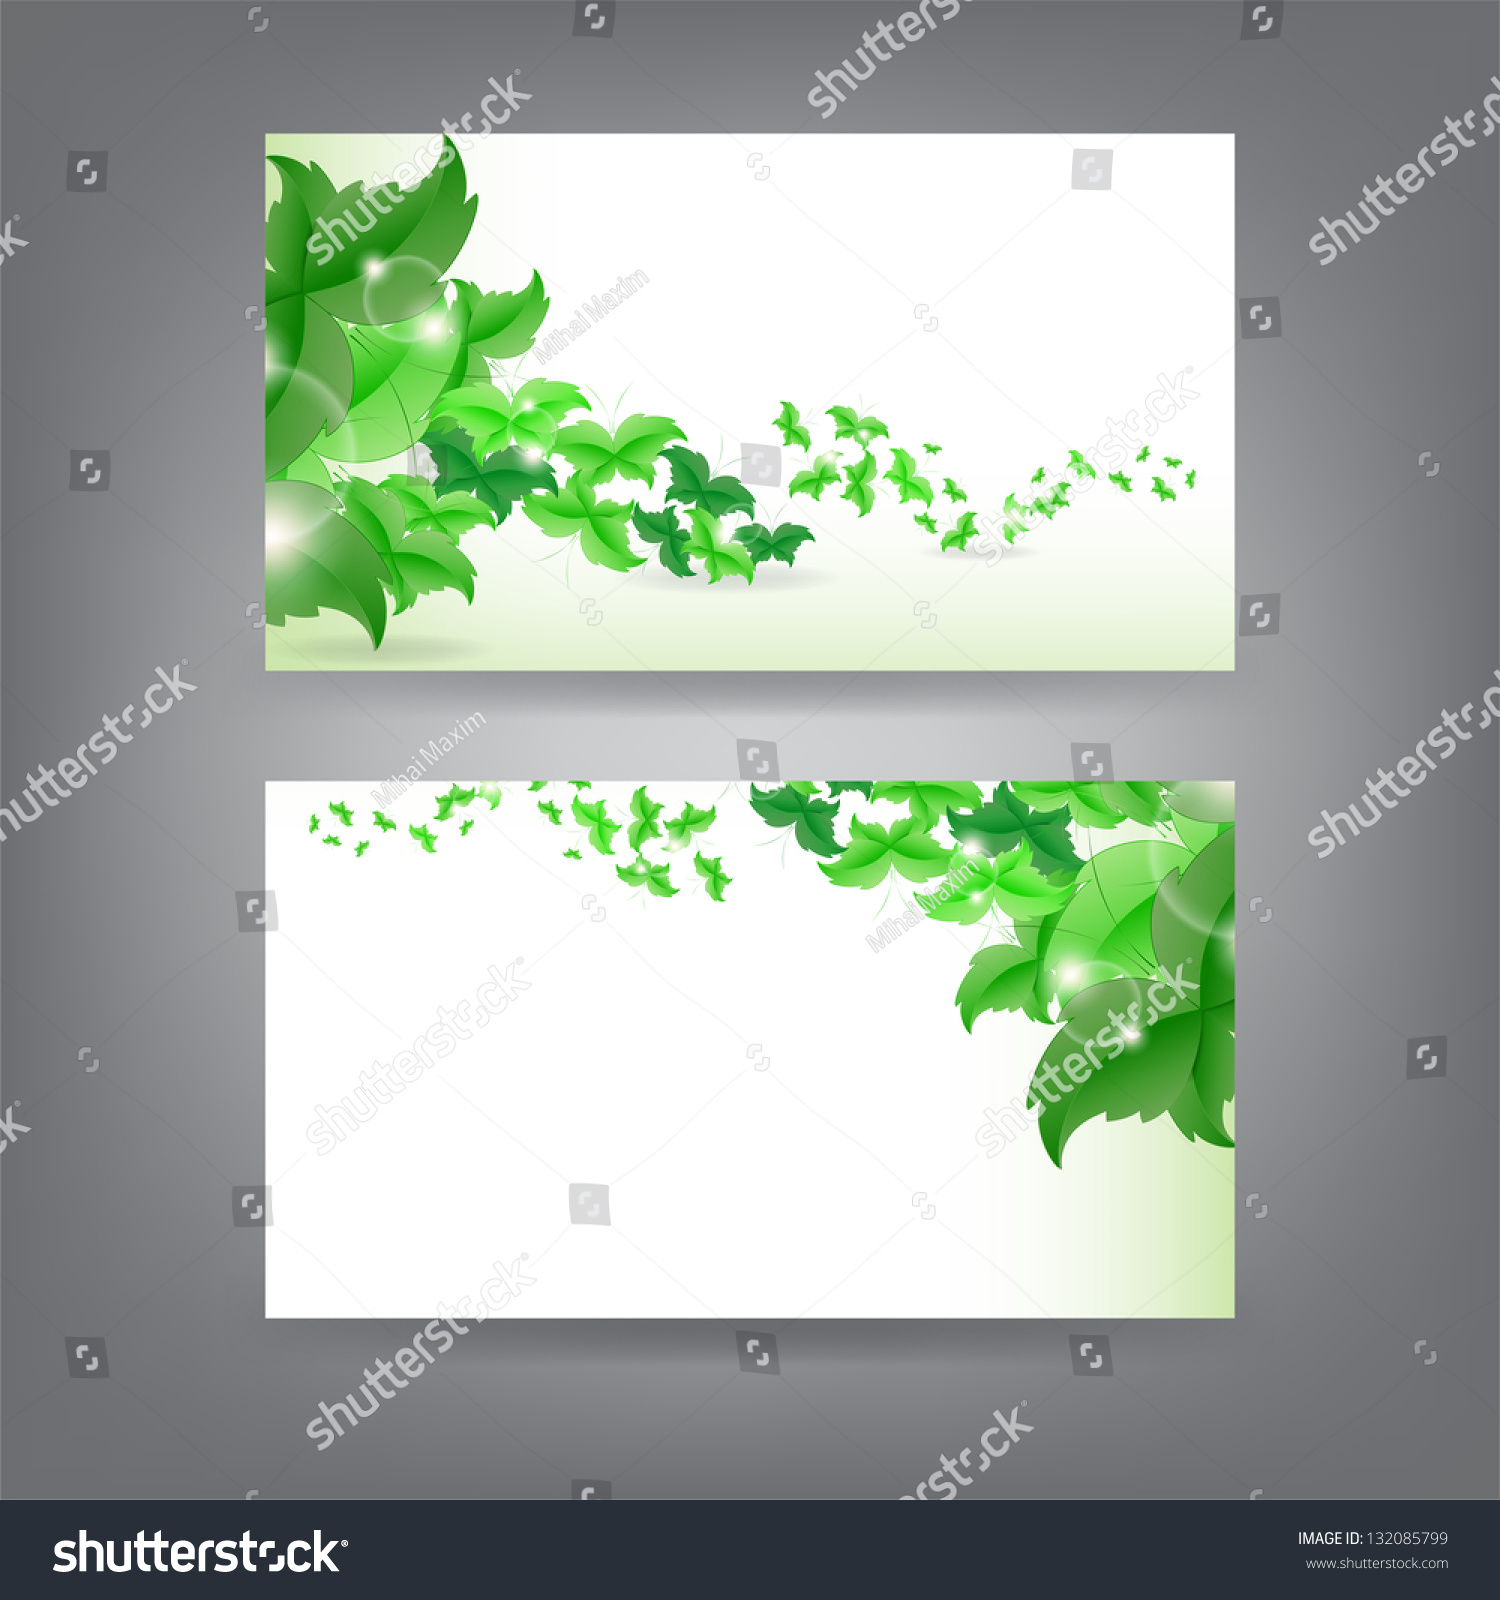 Environment Theme Business Card Template Green Stock Vector ...